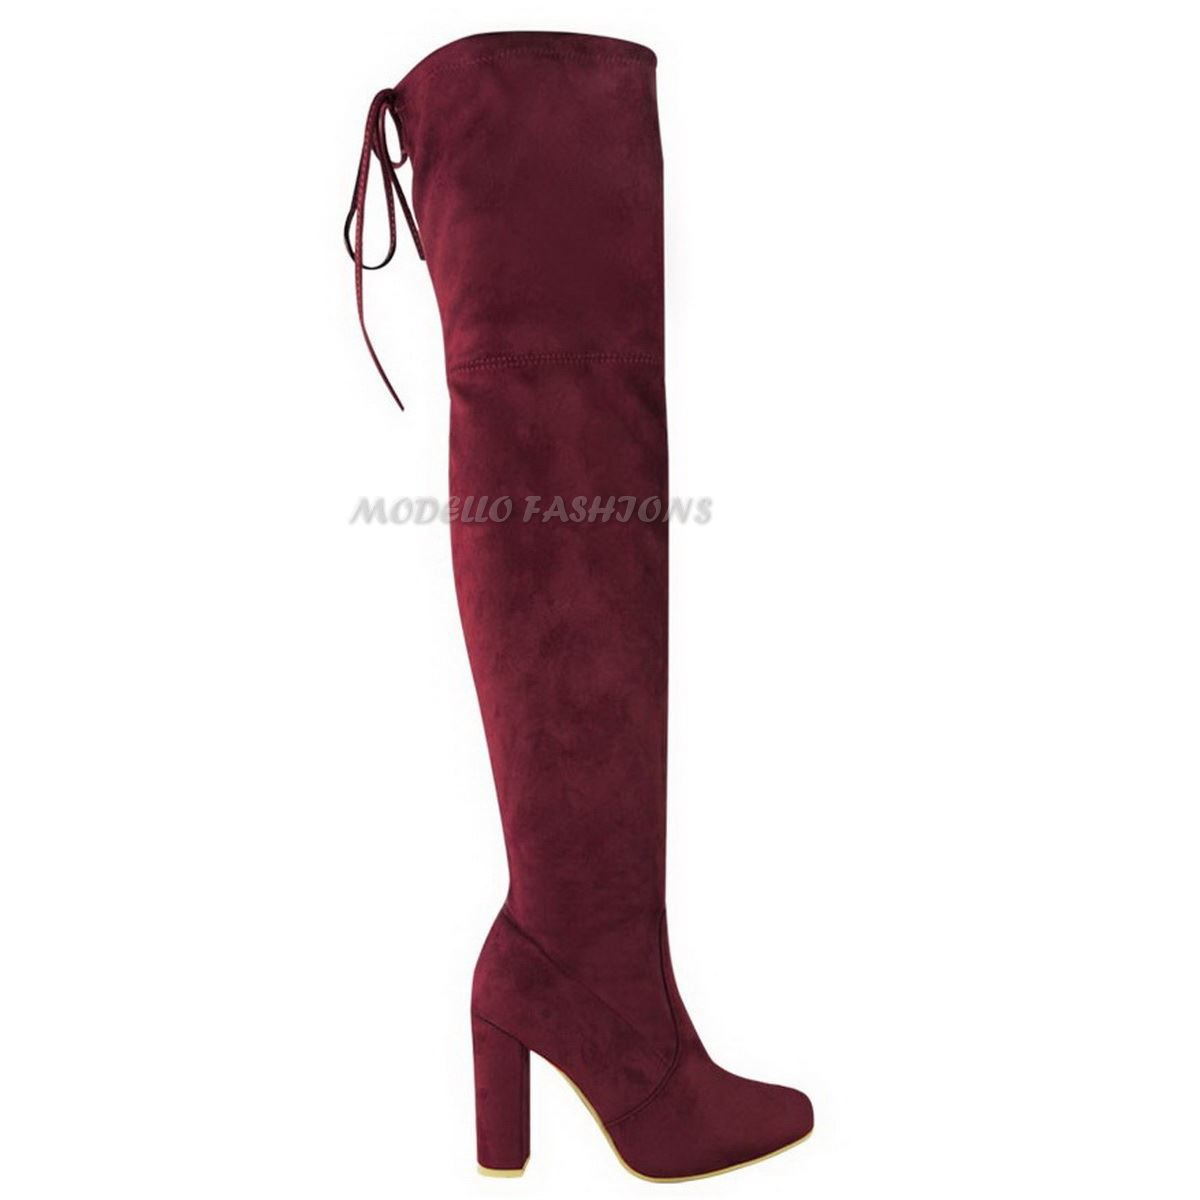 WOMENS-LADIES-THIGH-HIGH-BOOTS-OVER-THE-KNEE-PARTY-STRETCH-BLOCK-MID-HEEL-SIZE miniatuur 6